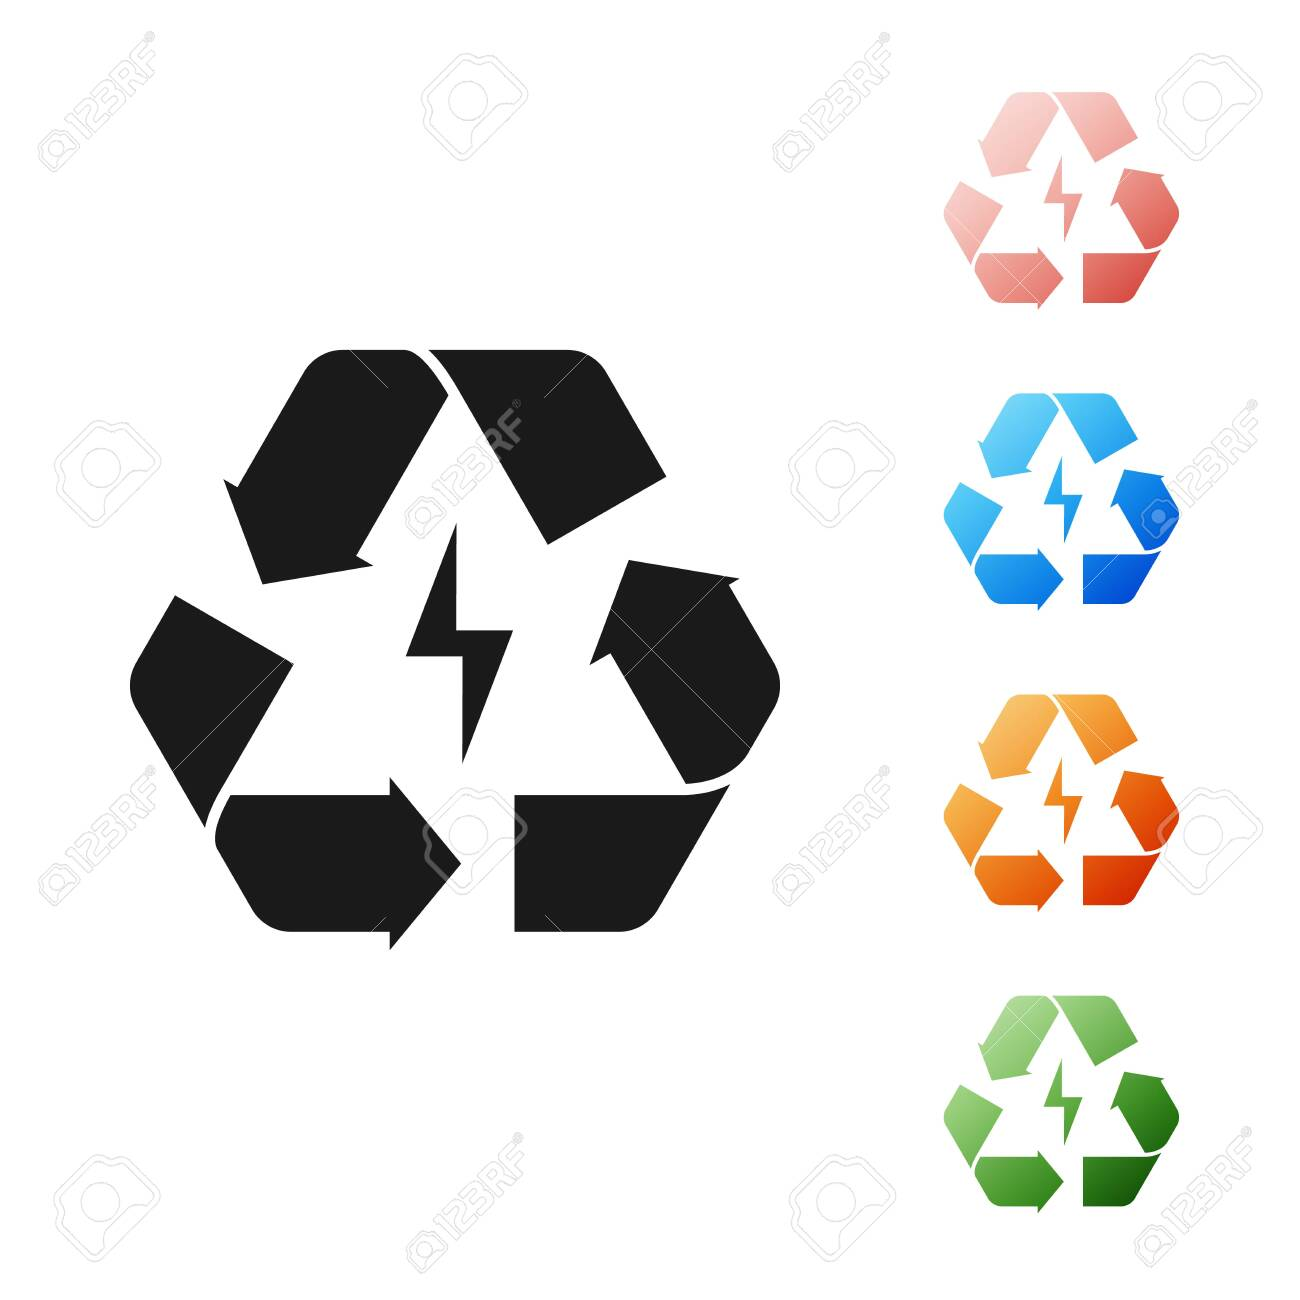 Black Battery with recycle symbol line icon isolated on white background. Battery with recycling symbol - renewable energy concept. Set icons colorful. Vector Illustration - 131382100